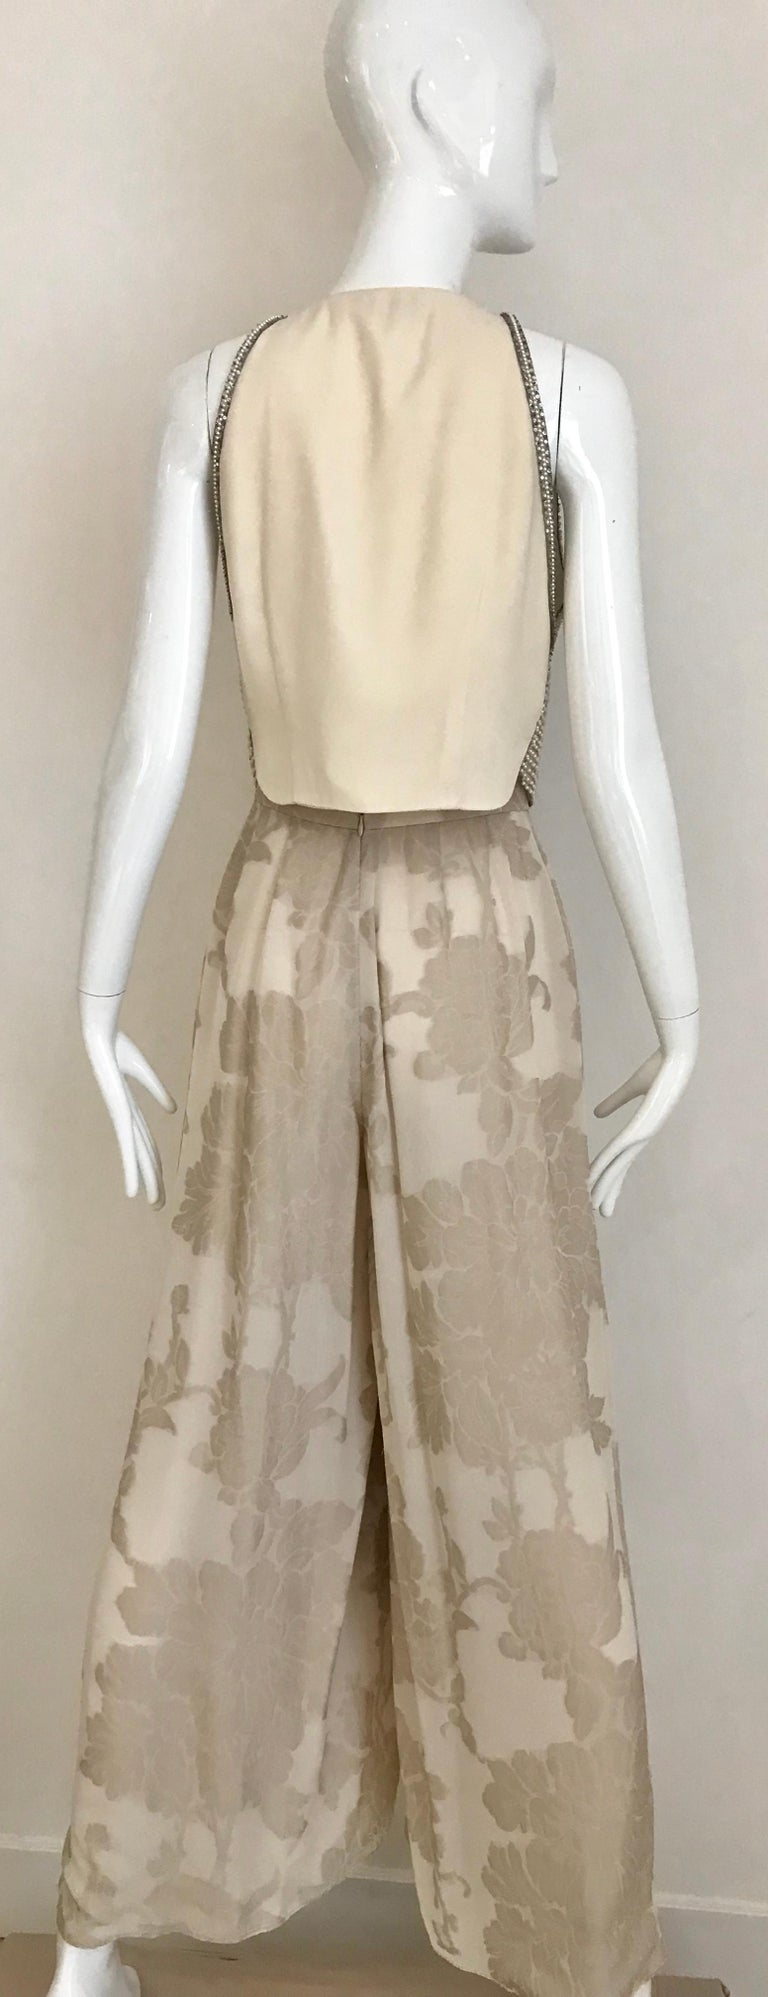 Giorgio Armani 3 piece Beaded Top and Pearl Vest with Silk Jacquard Pant, 1990s For Sale 4